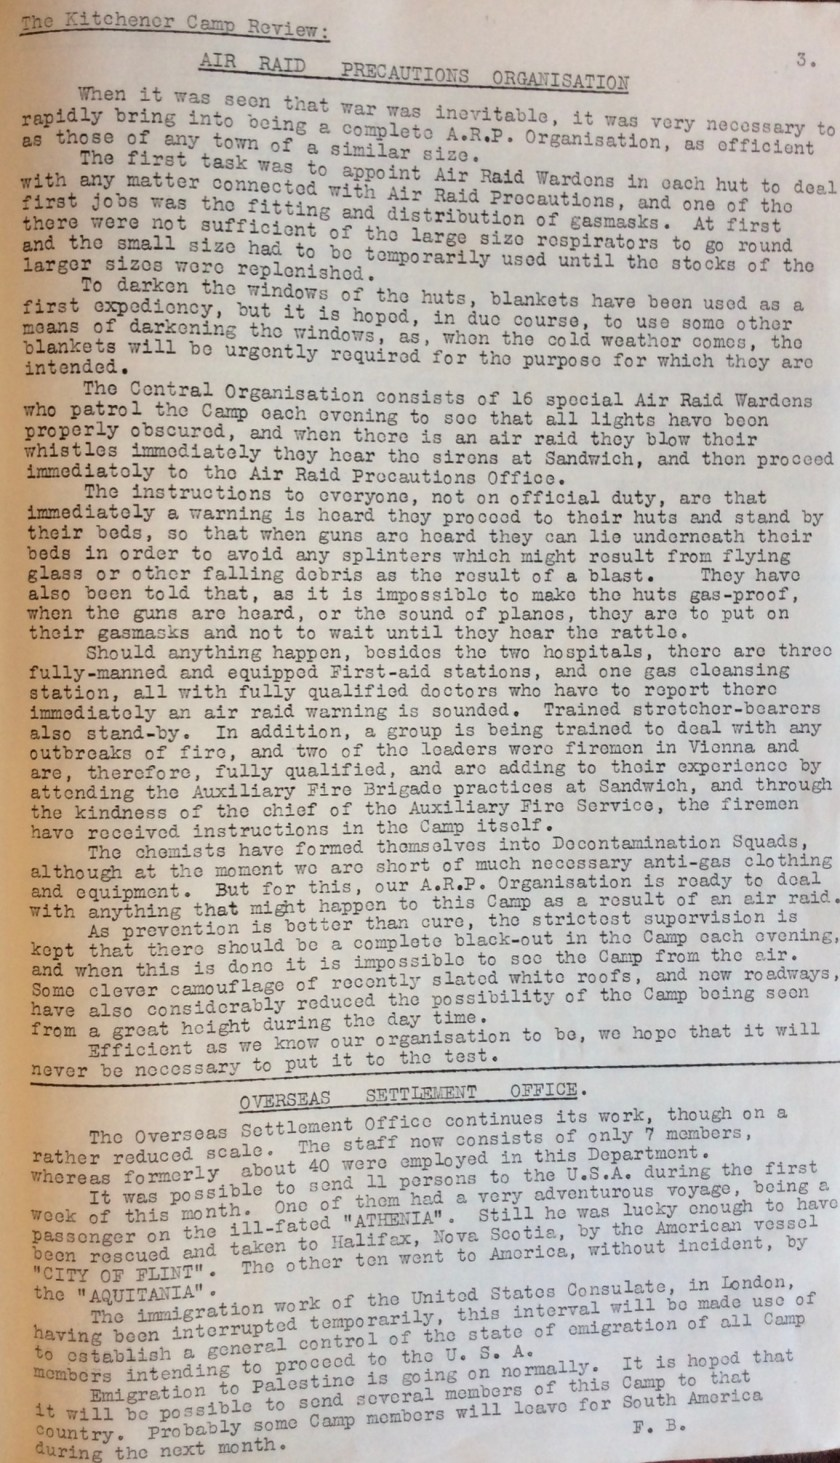 Kitchener Camp Review, October 1939, page 3